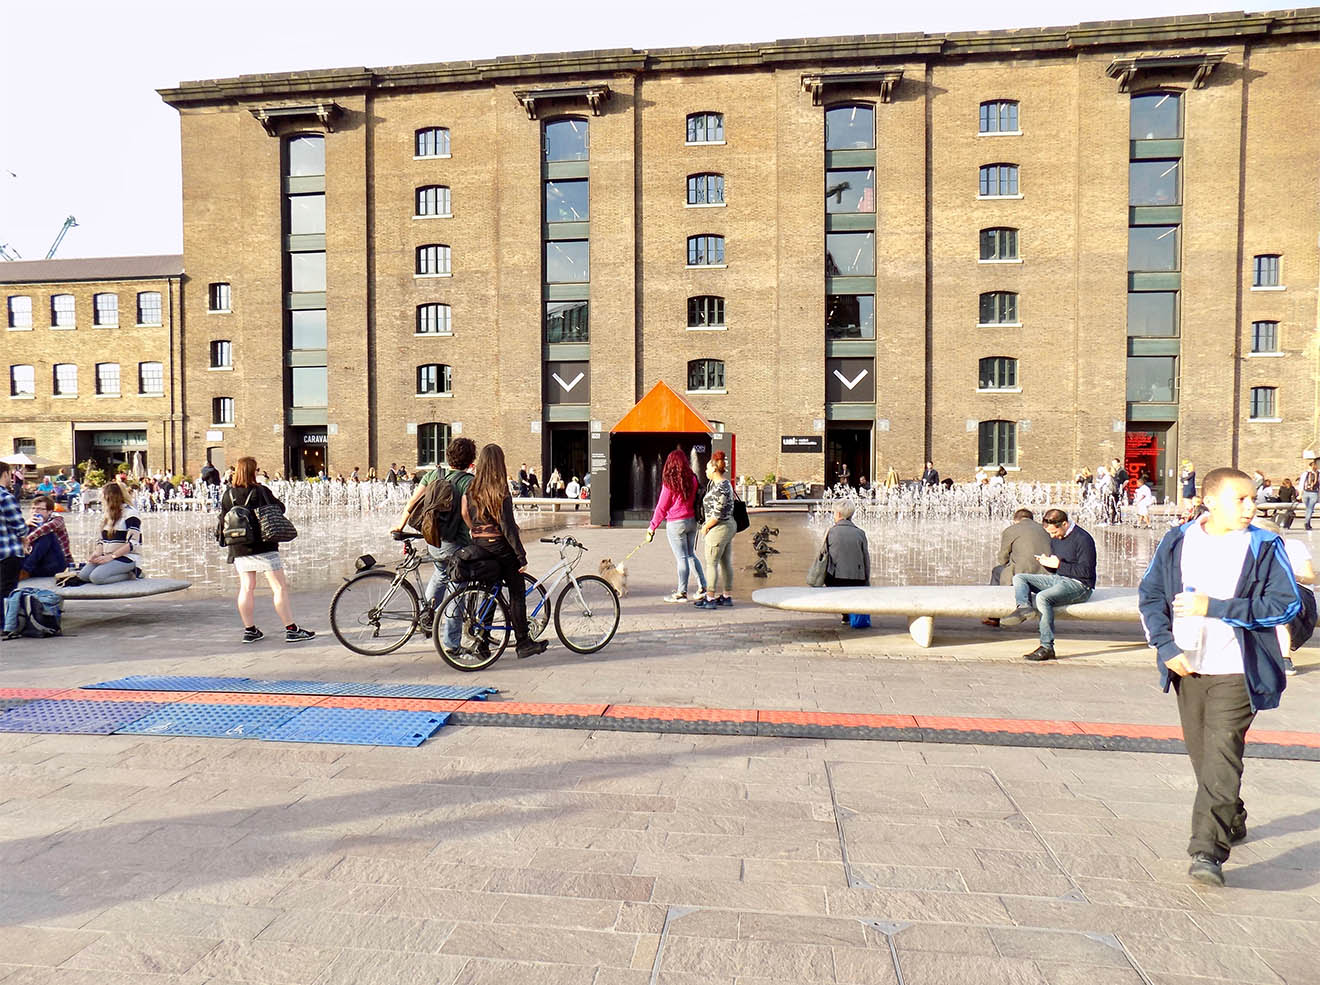 designjunction at Kings Cross Granary Square fountains